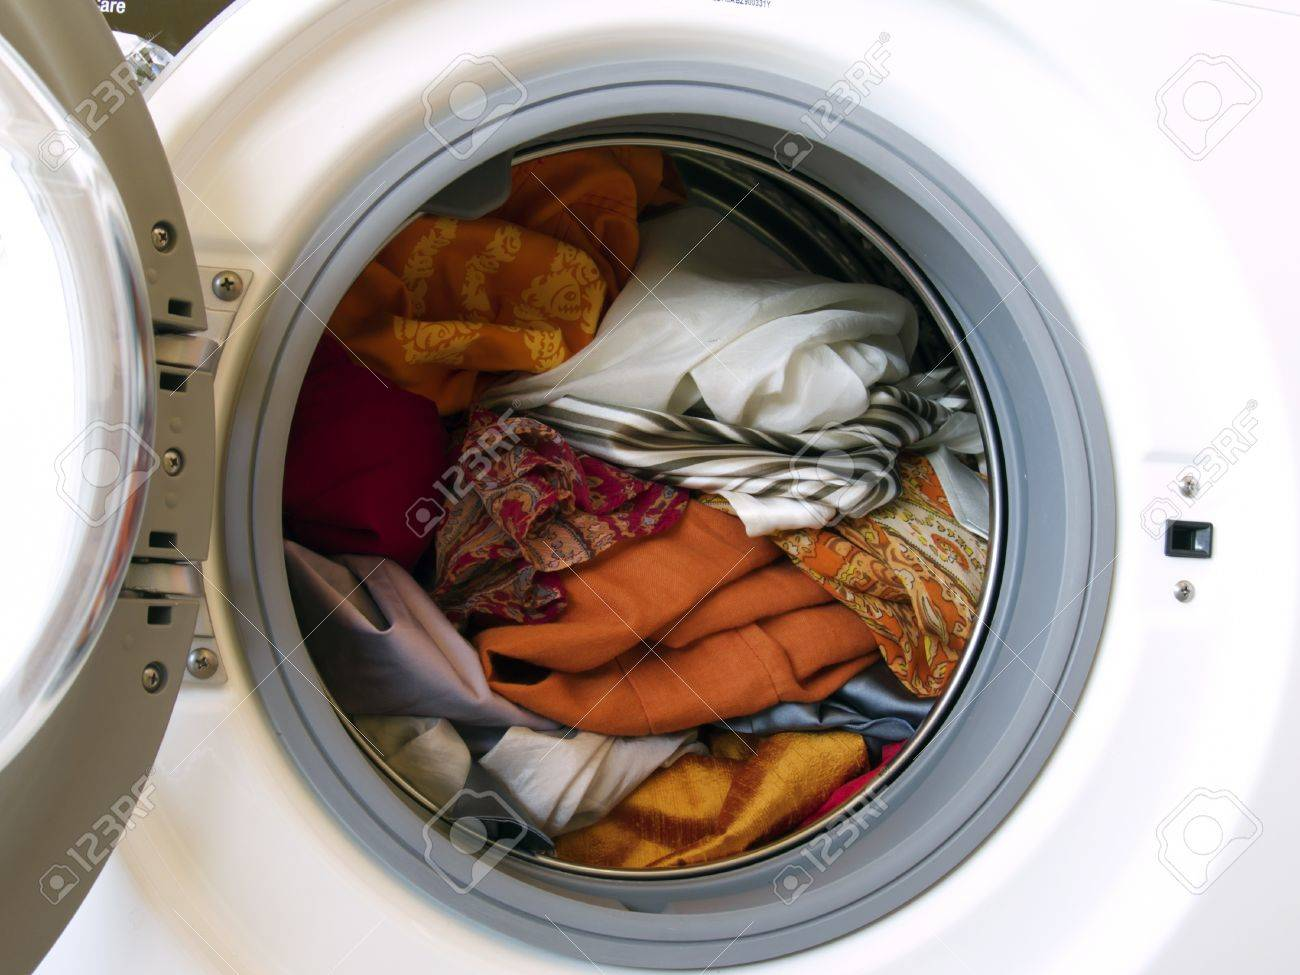 washing machine with colored clothes Stock Photo - 8605057